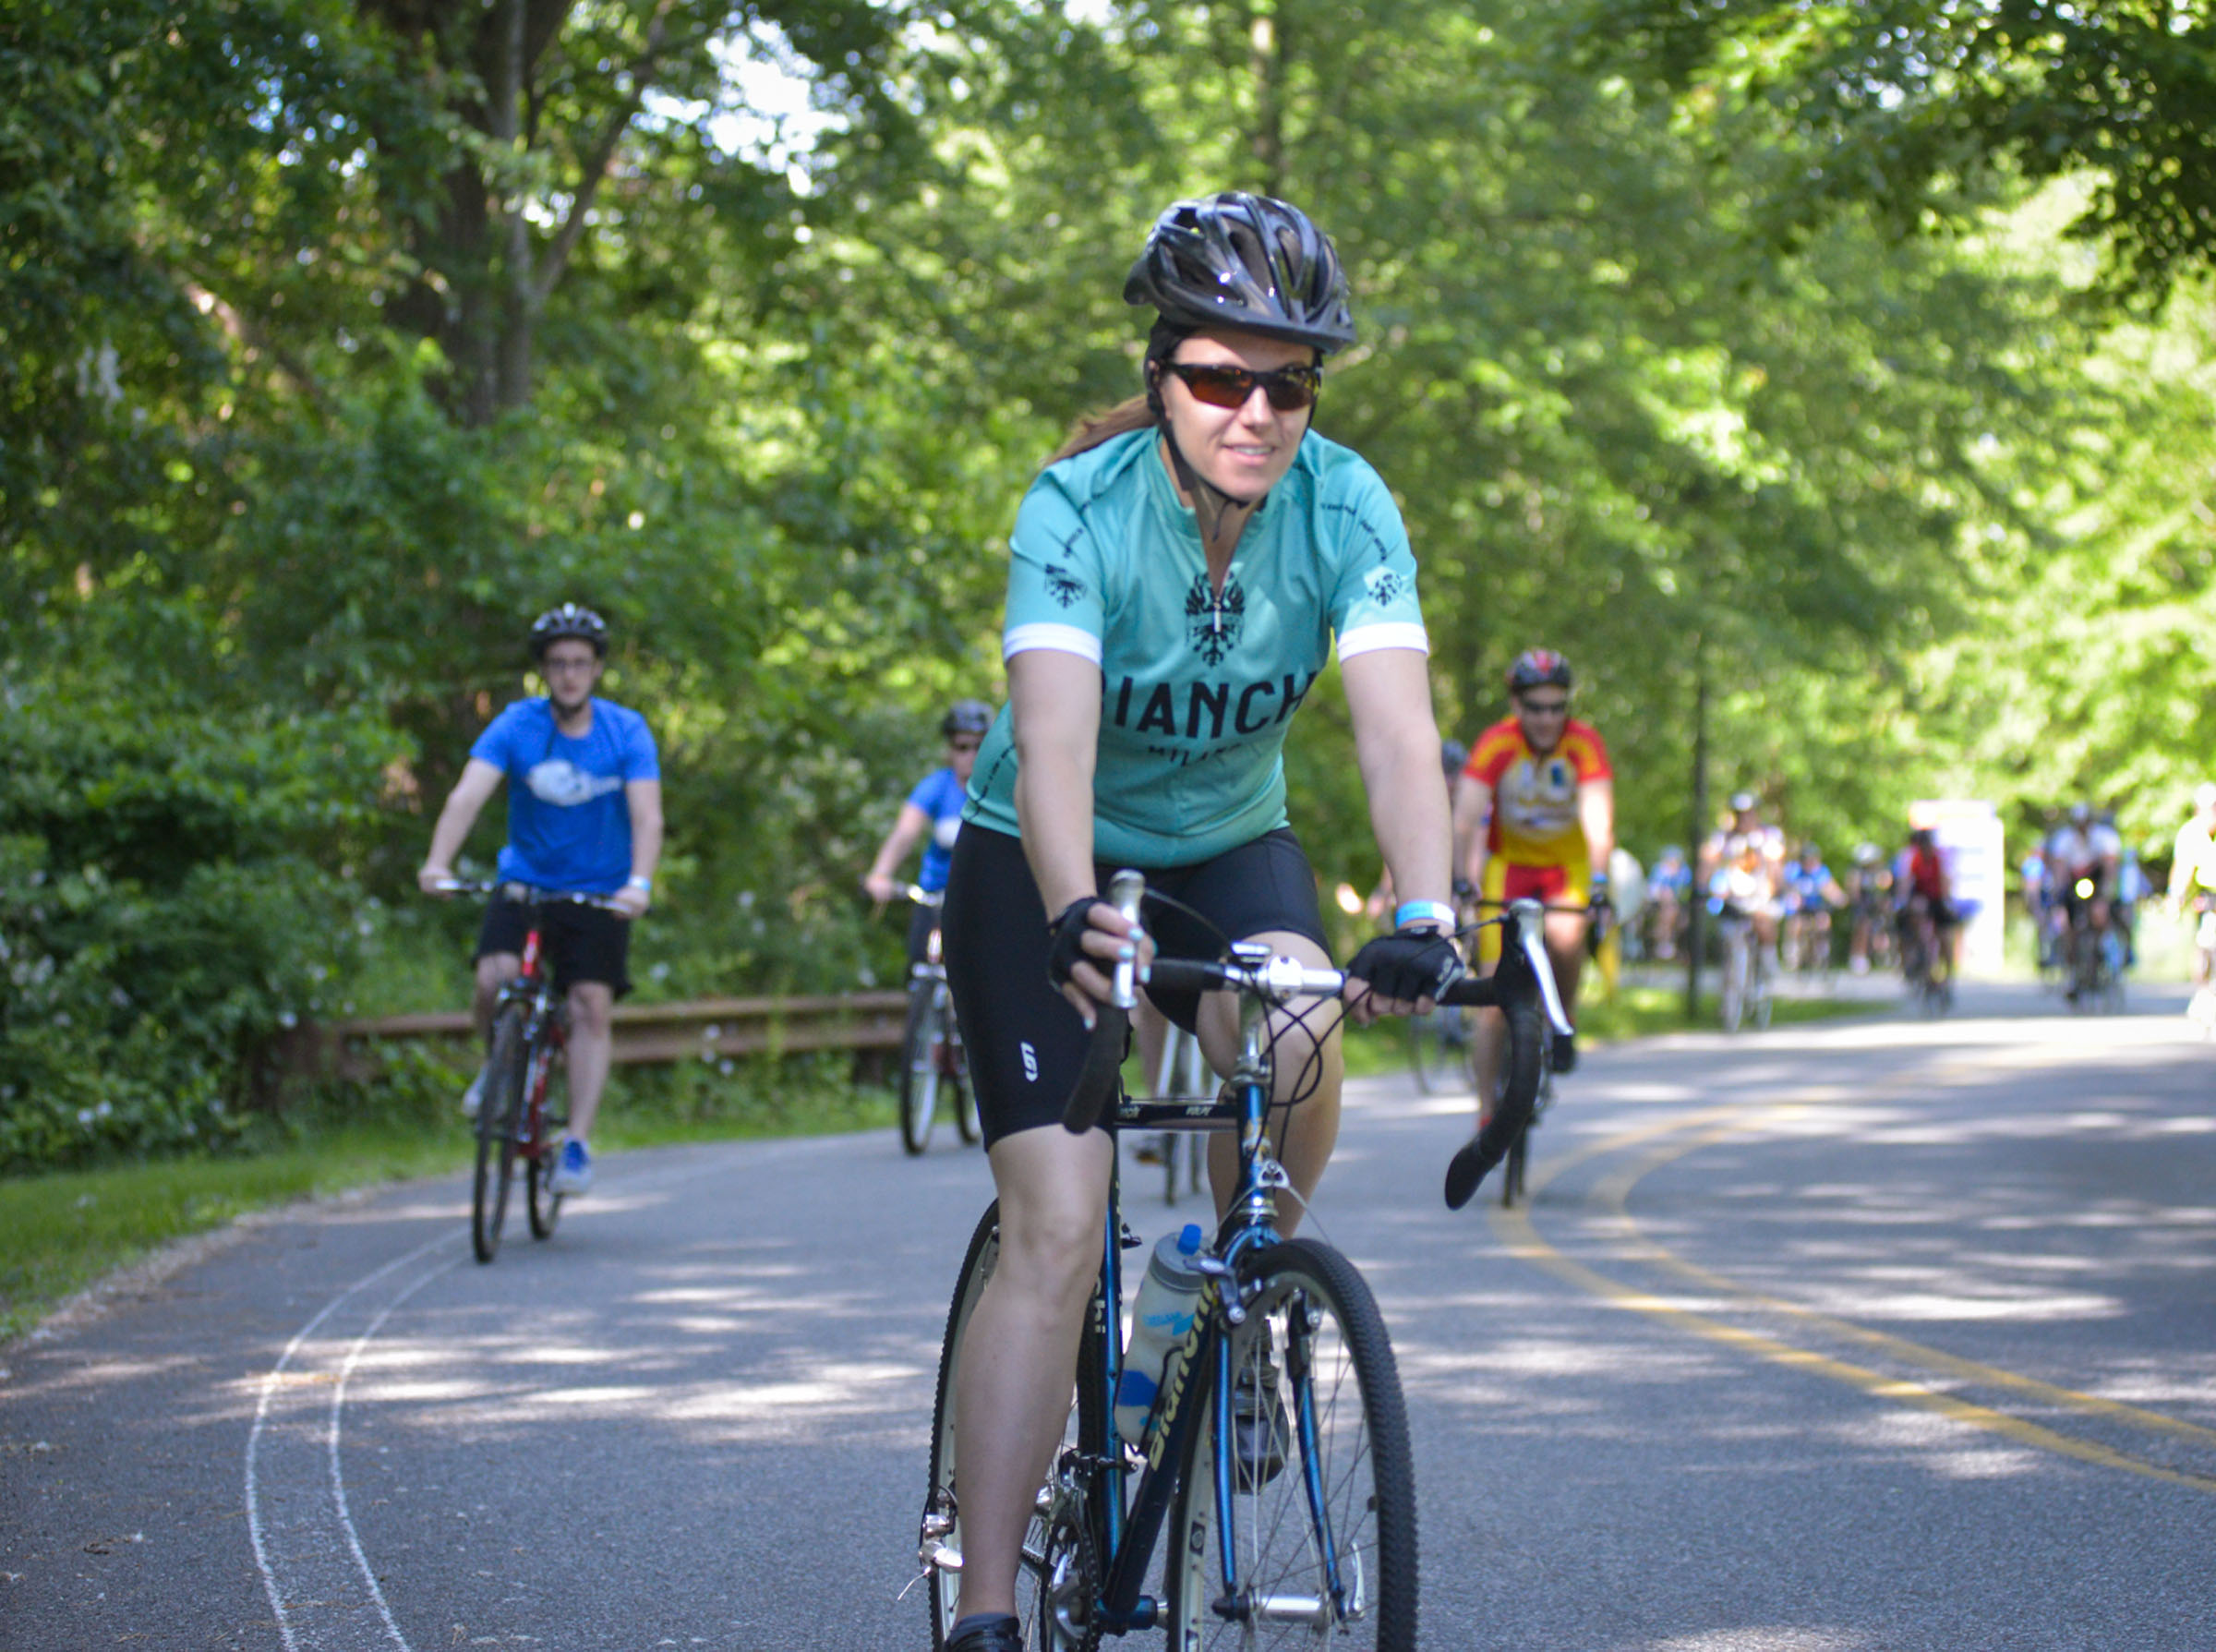 2017-06-04 GTD4A Charity Bike Ride - BCC - Paramus NJ-1885.jpg